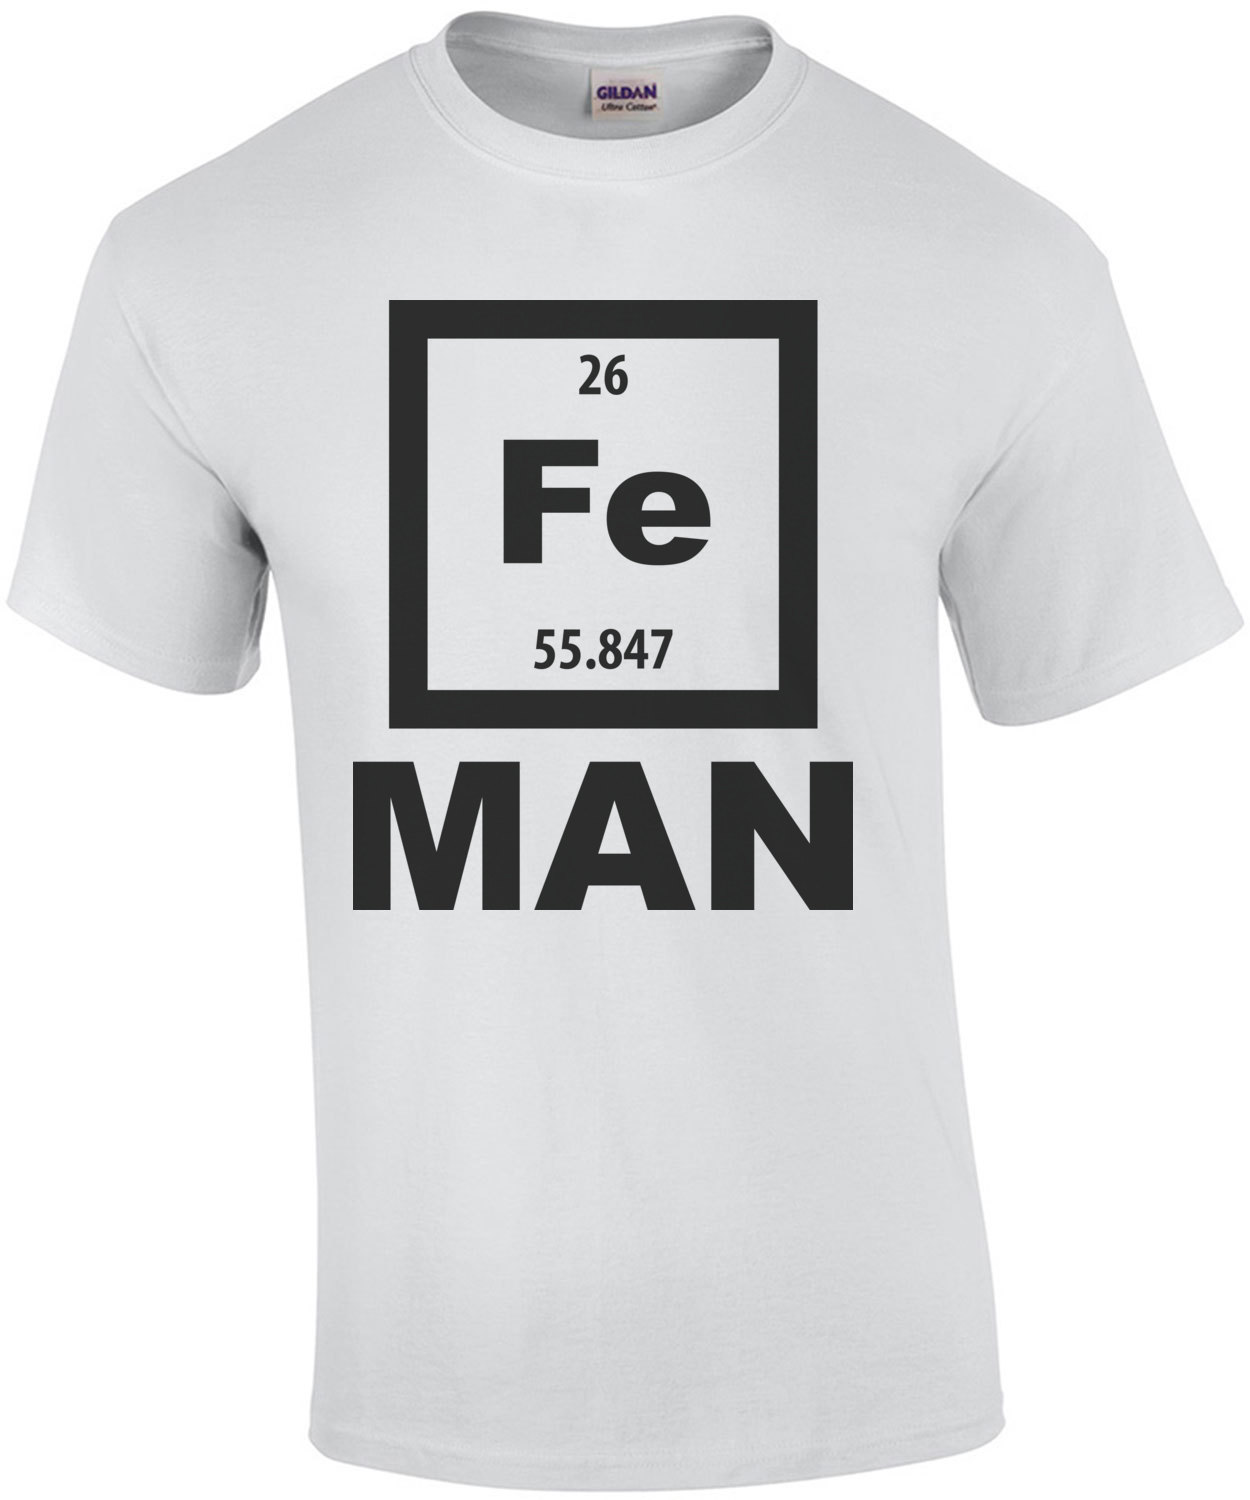 Fe man iron man element periodic table t shirt gamestrikefo Gallery